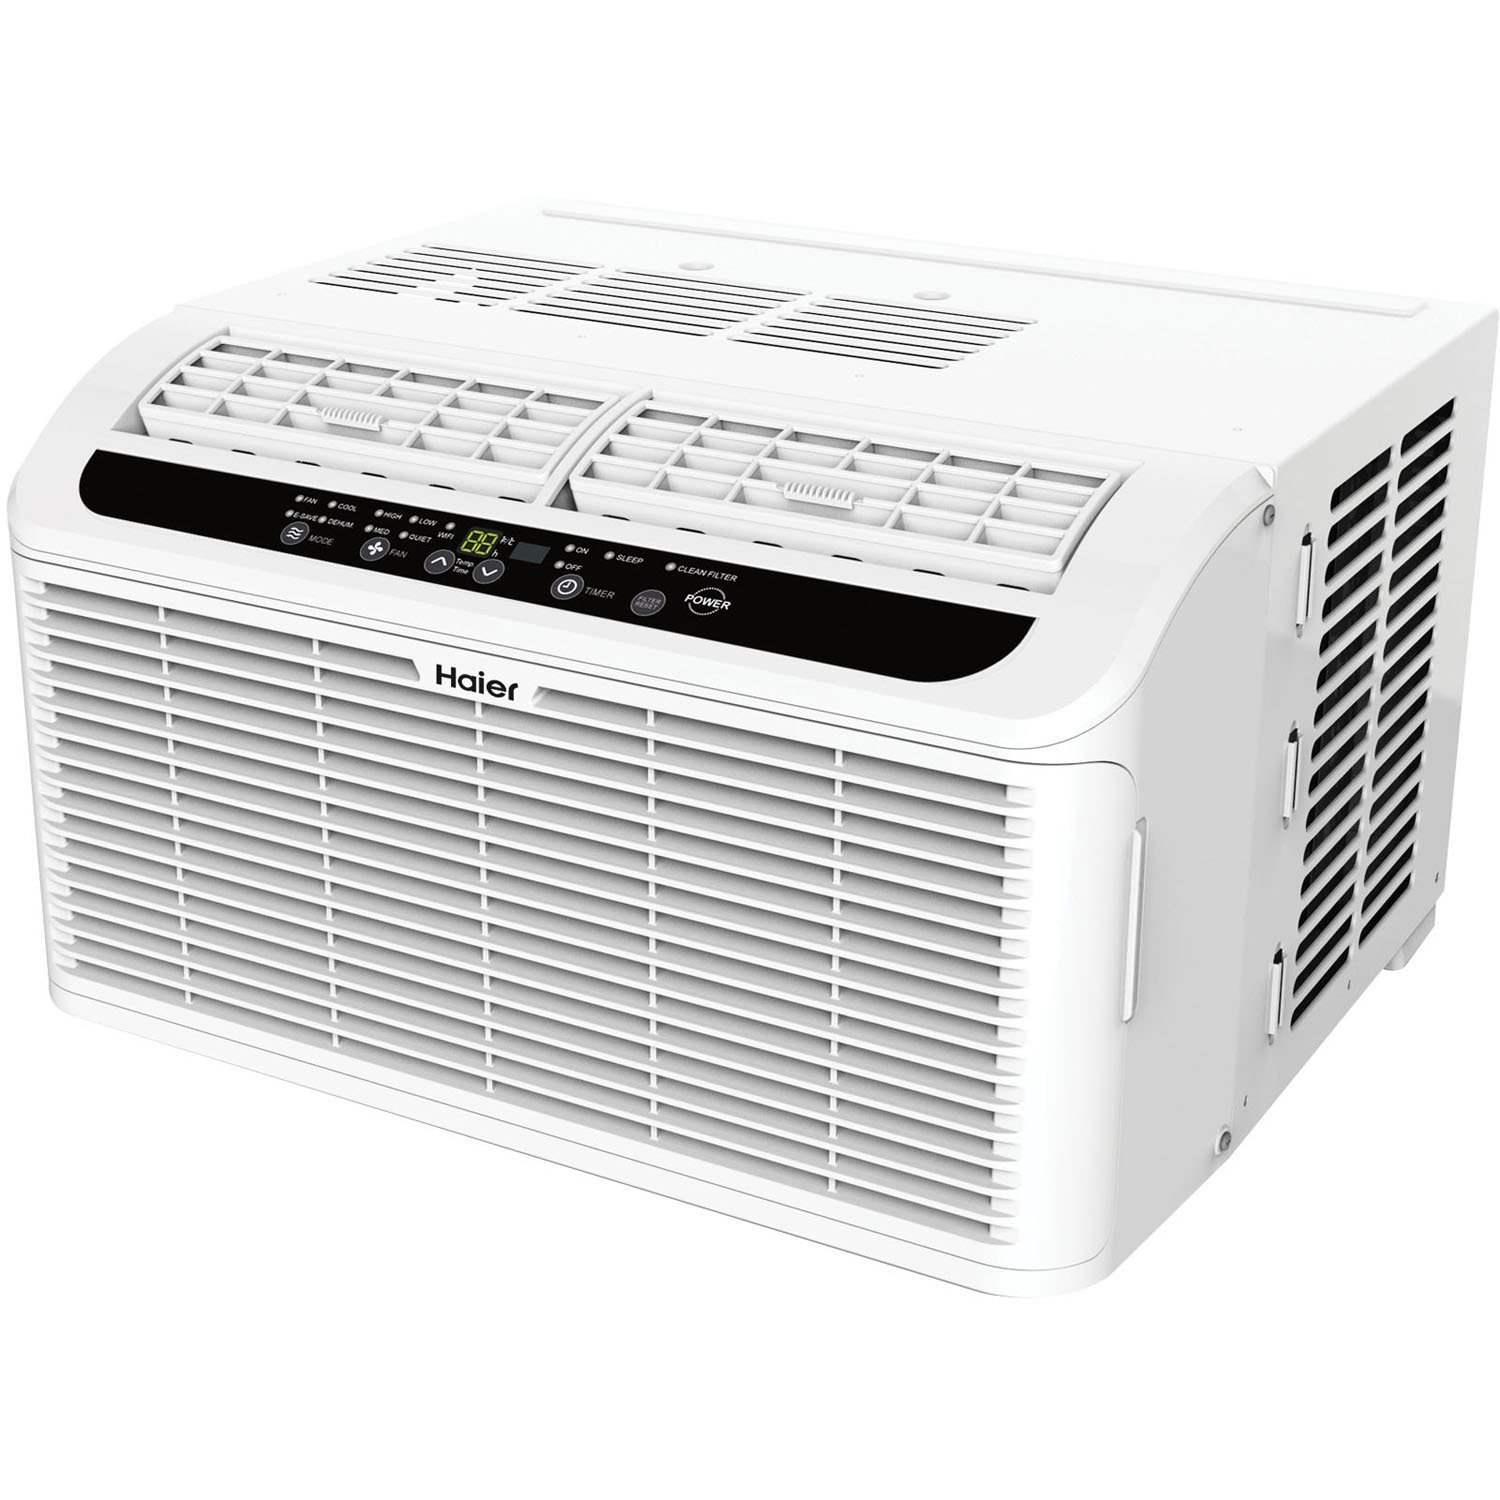 Haier Serenity Series ESAQ406P Room Air Conditioner